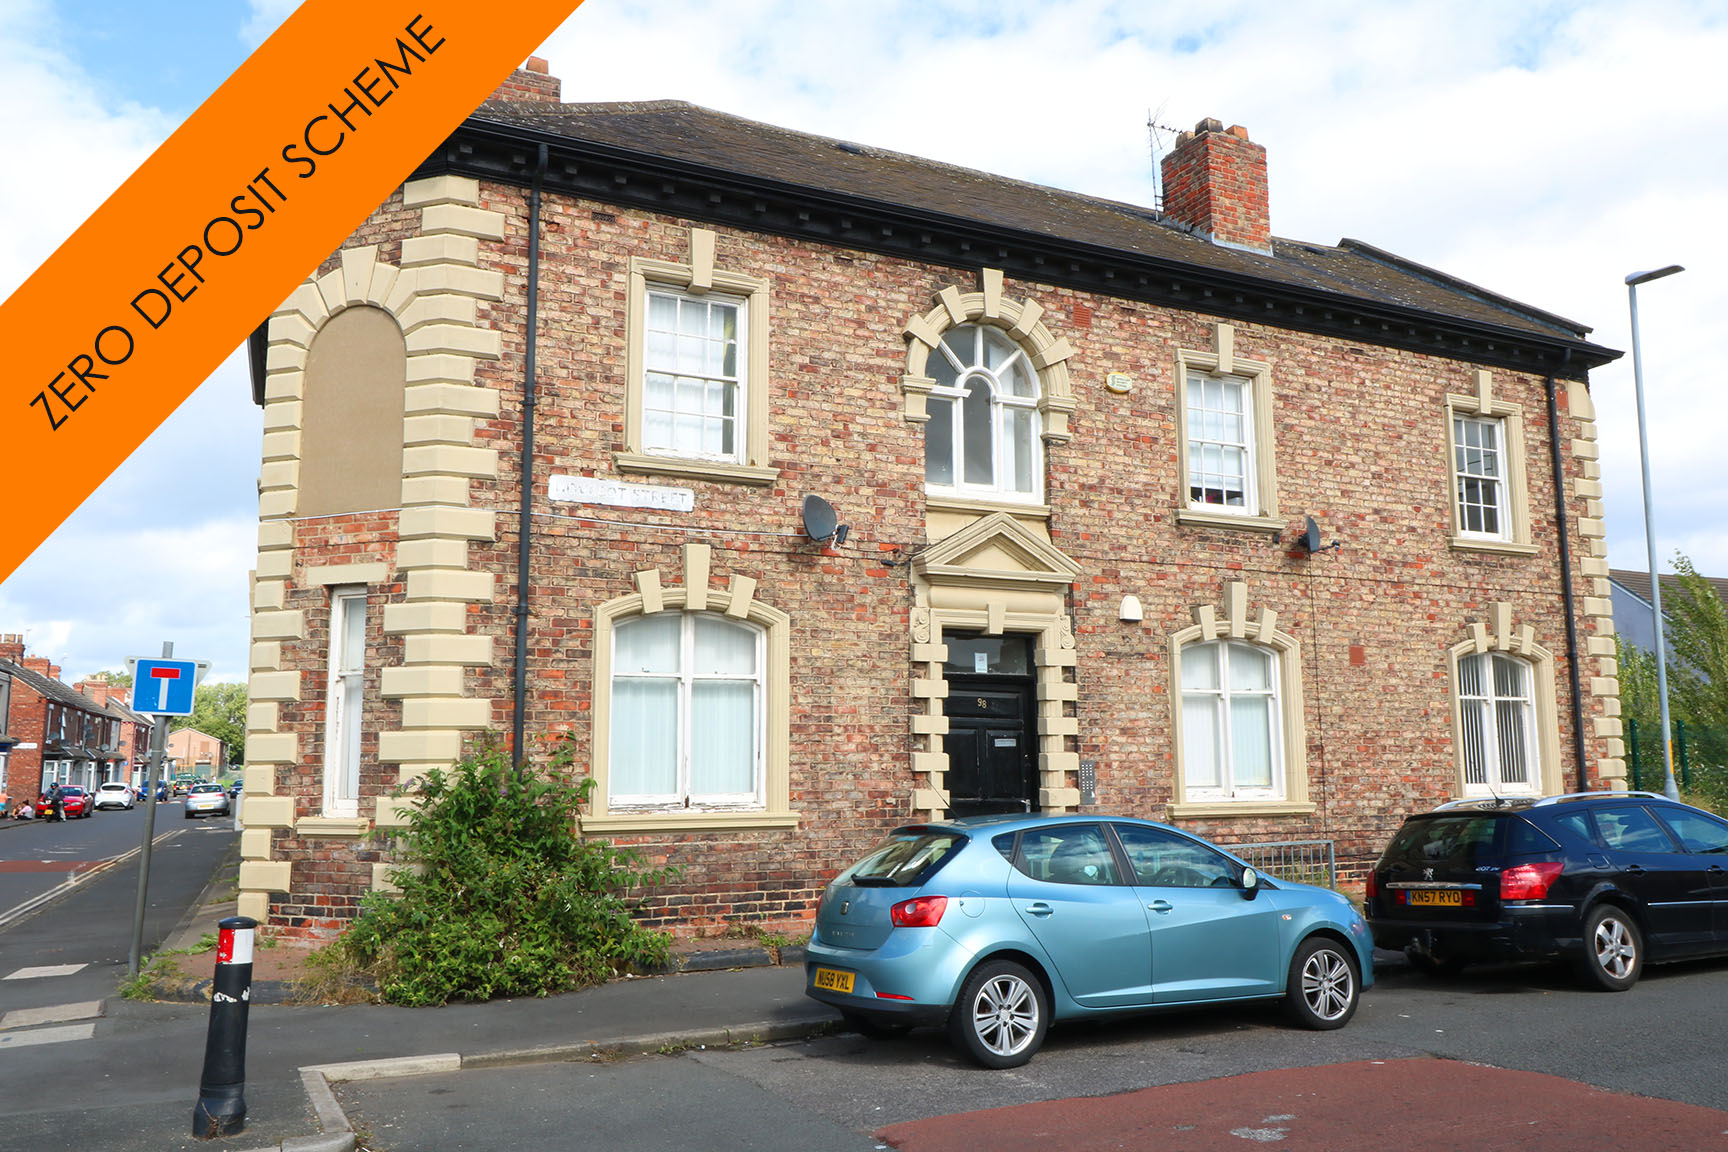 Home for Sale Let - Photo 01 The Almshouse, 98 Dovecot Street, Stockton on Tees, TS18 1HA